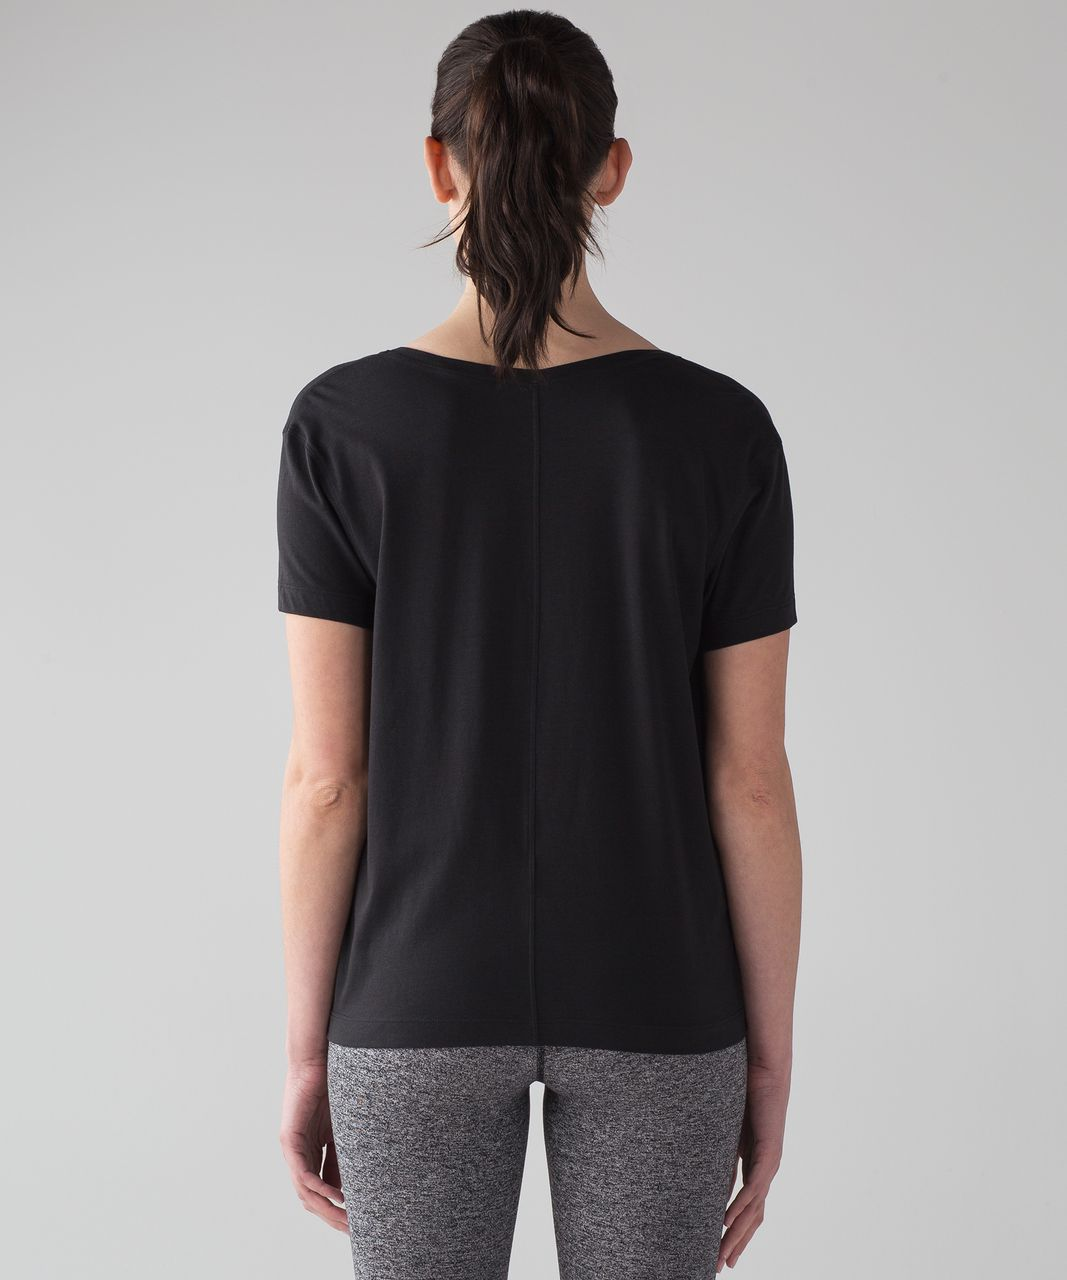 lemon cove black girls personals Find top-rated lemon cove personal services lemon cove: lemon cove personal services looking for career coaching, clothing alteration black.